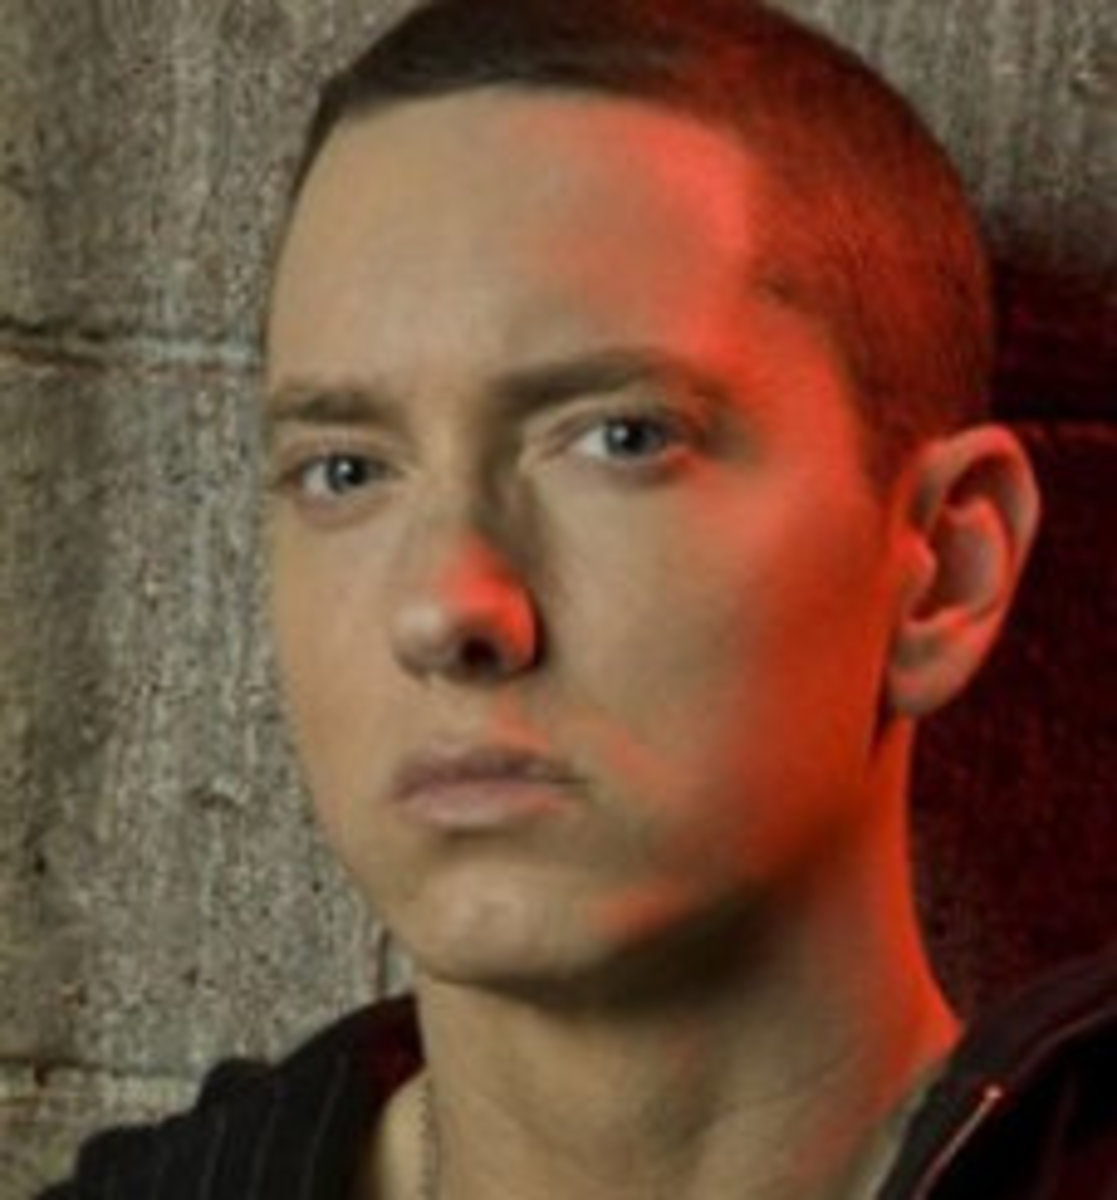 Eminem's lyrics